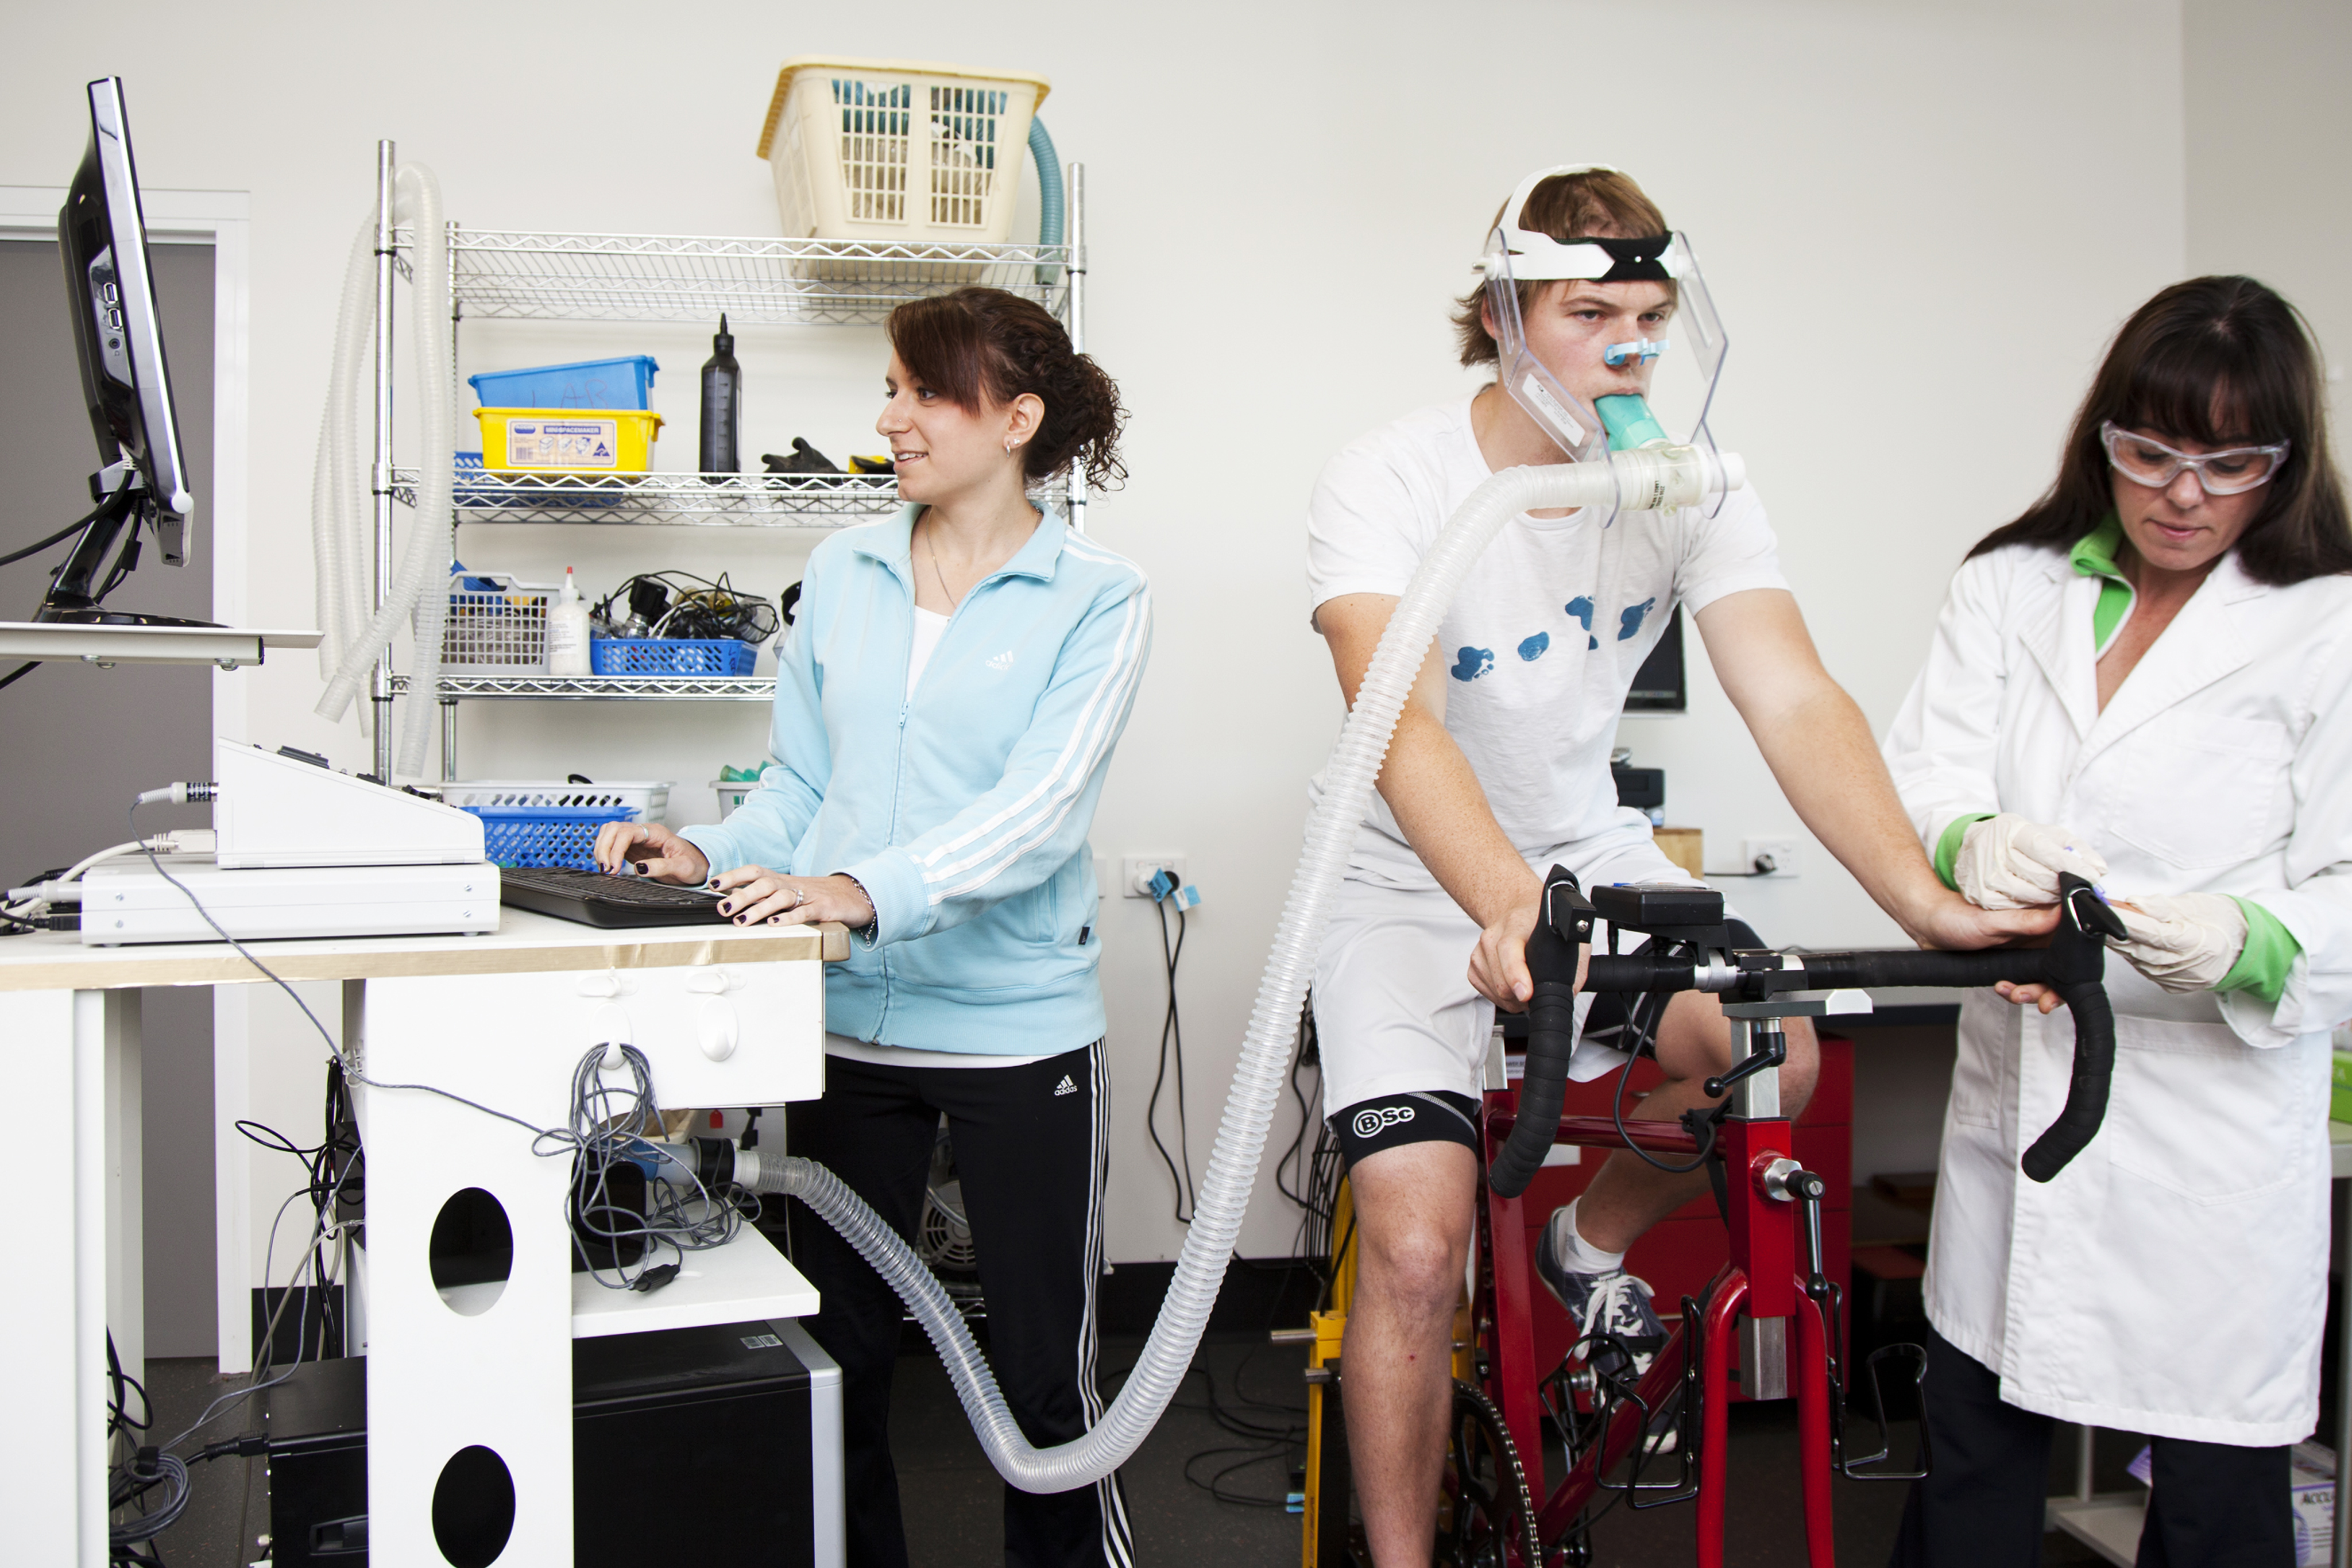 Exercise and sport science labs